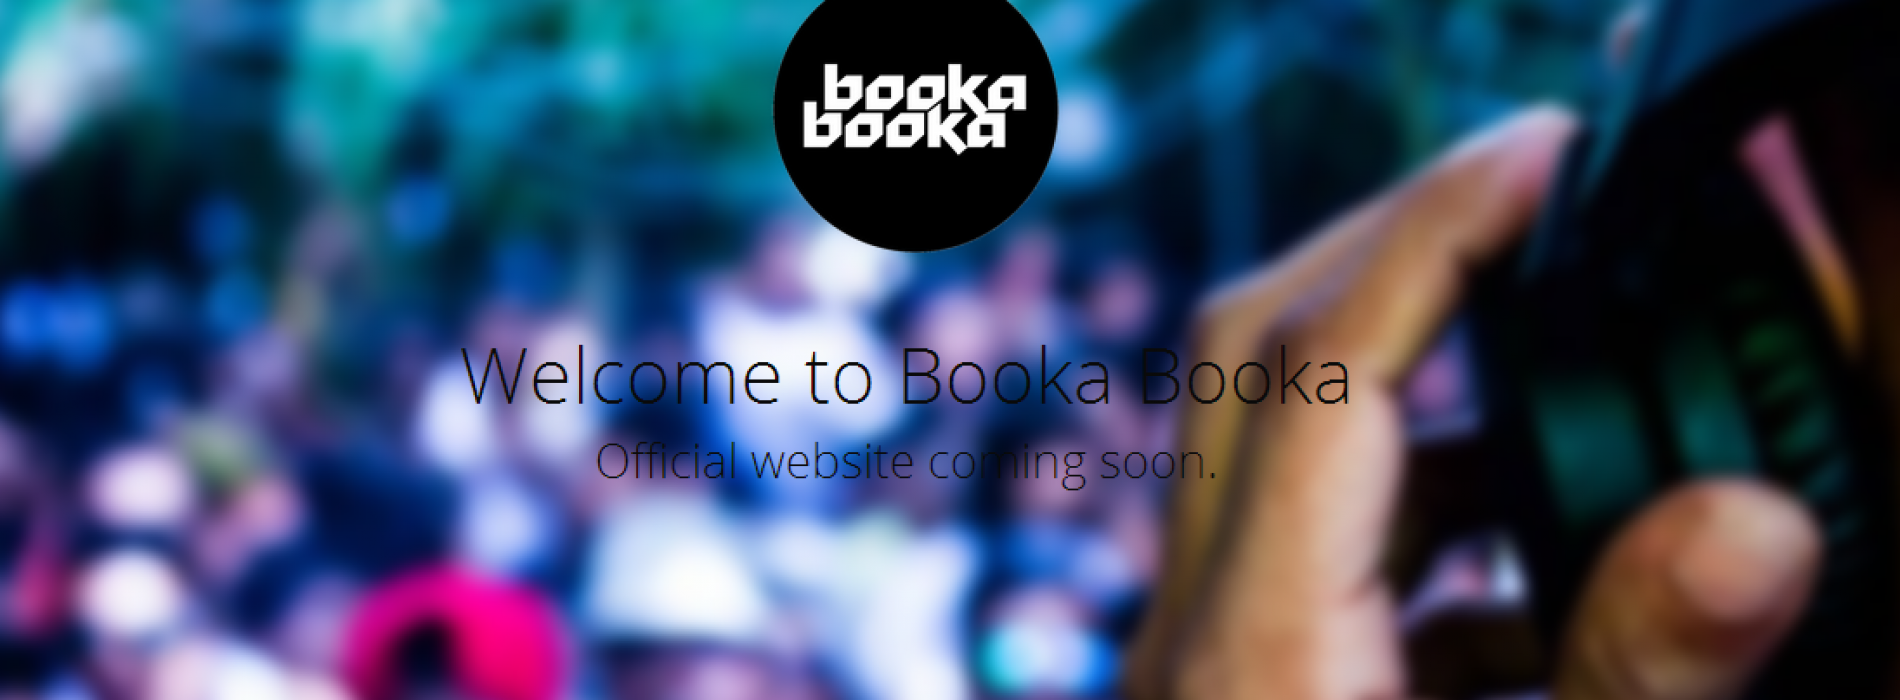 Booka Booka Gets A New Website Soon